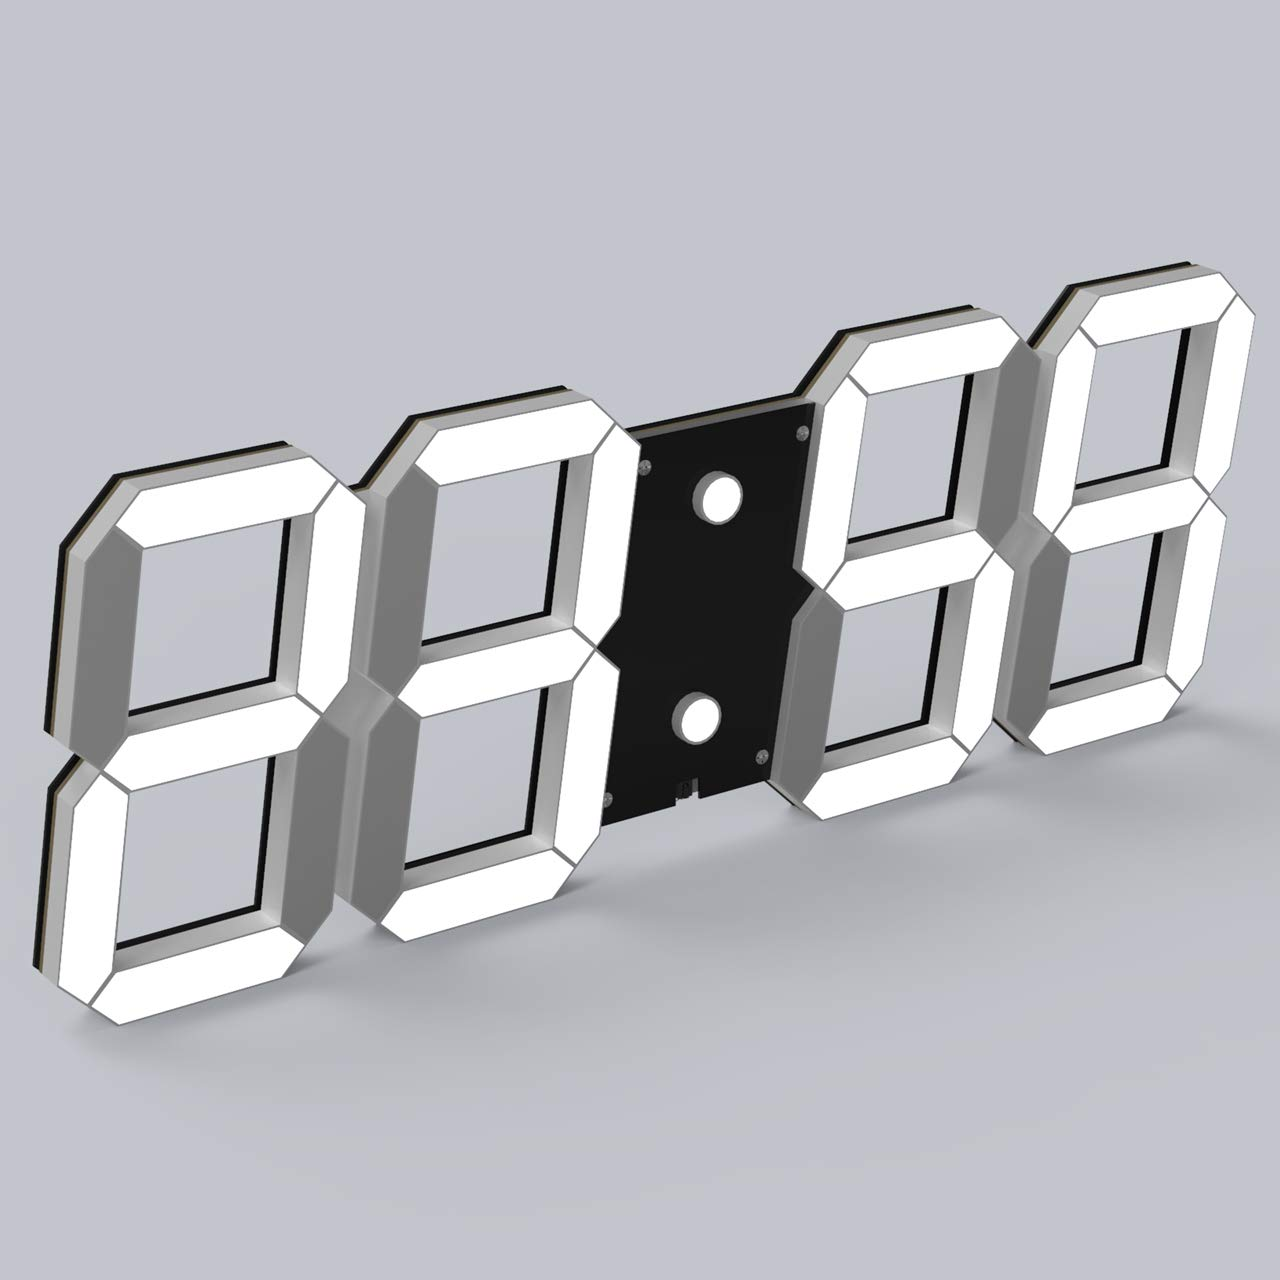 CHKOSDA 3D Digital Wall Clock, 6 LED Numbers Countdown Clock, Remote Control, Ultra-Thin Design, Large Calendar, Auto Dimmer 8-Level Adjustable Brightness Office Clock Black Shell, White